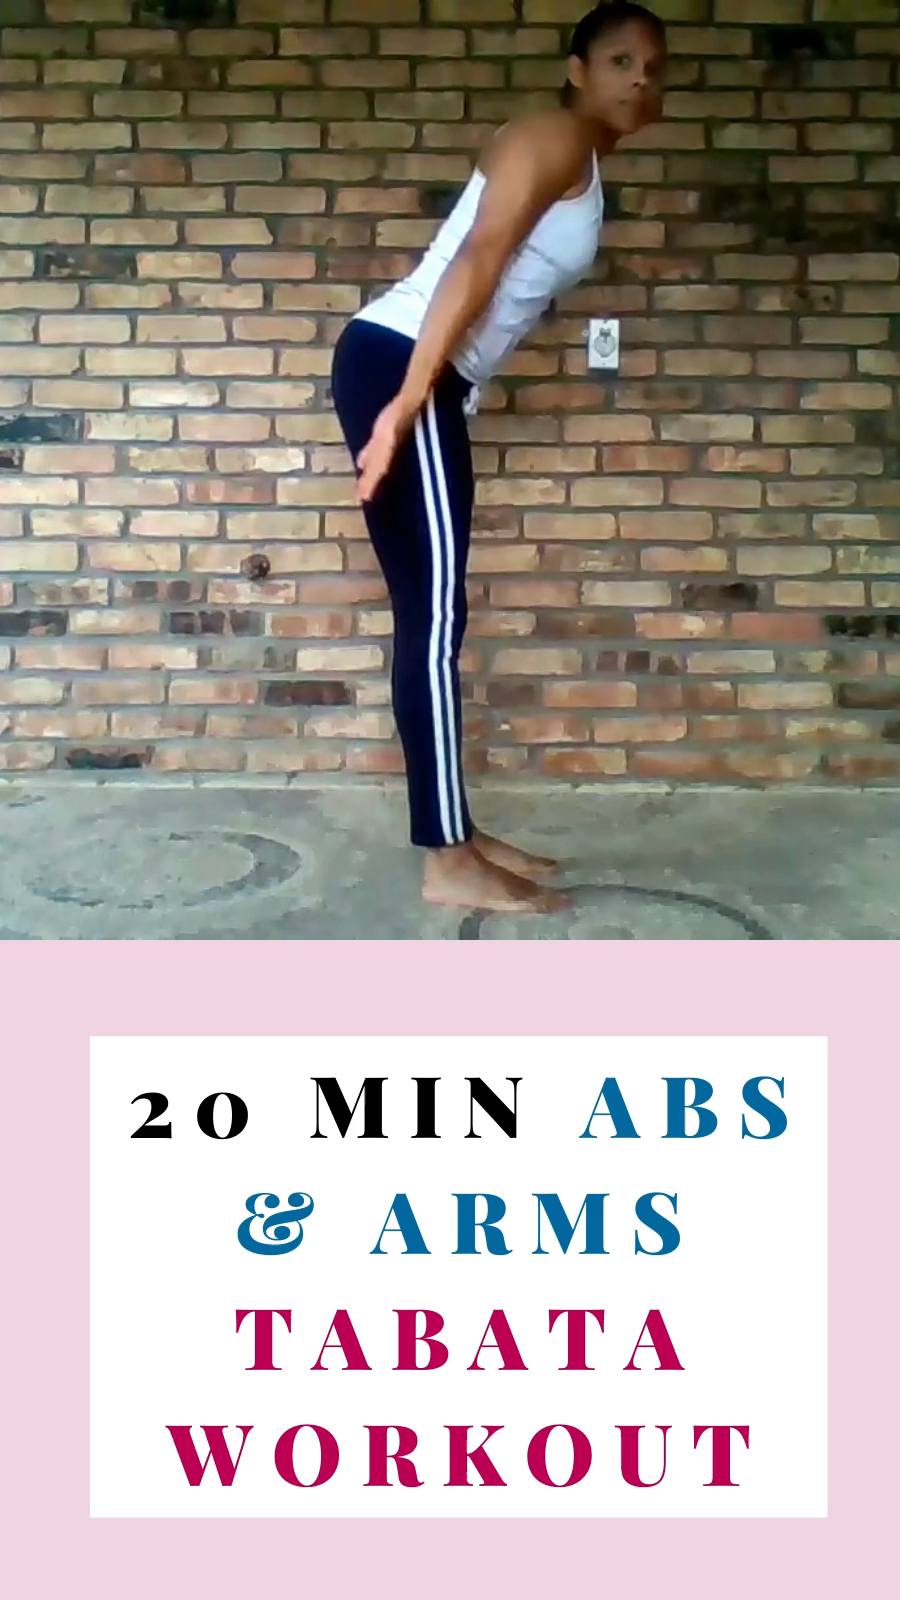 How 40 Year Old Mom Manage To Fight Stubborn Belly Fat And Lose 20 Pounds in 2 Weeks